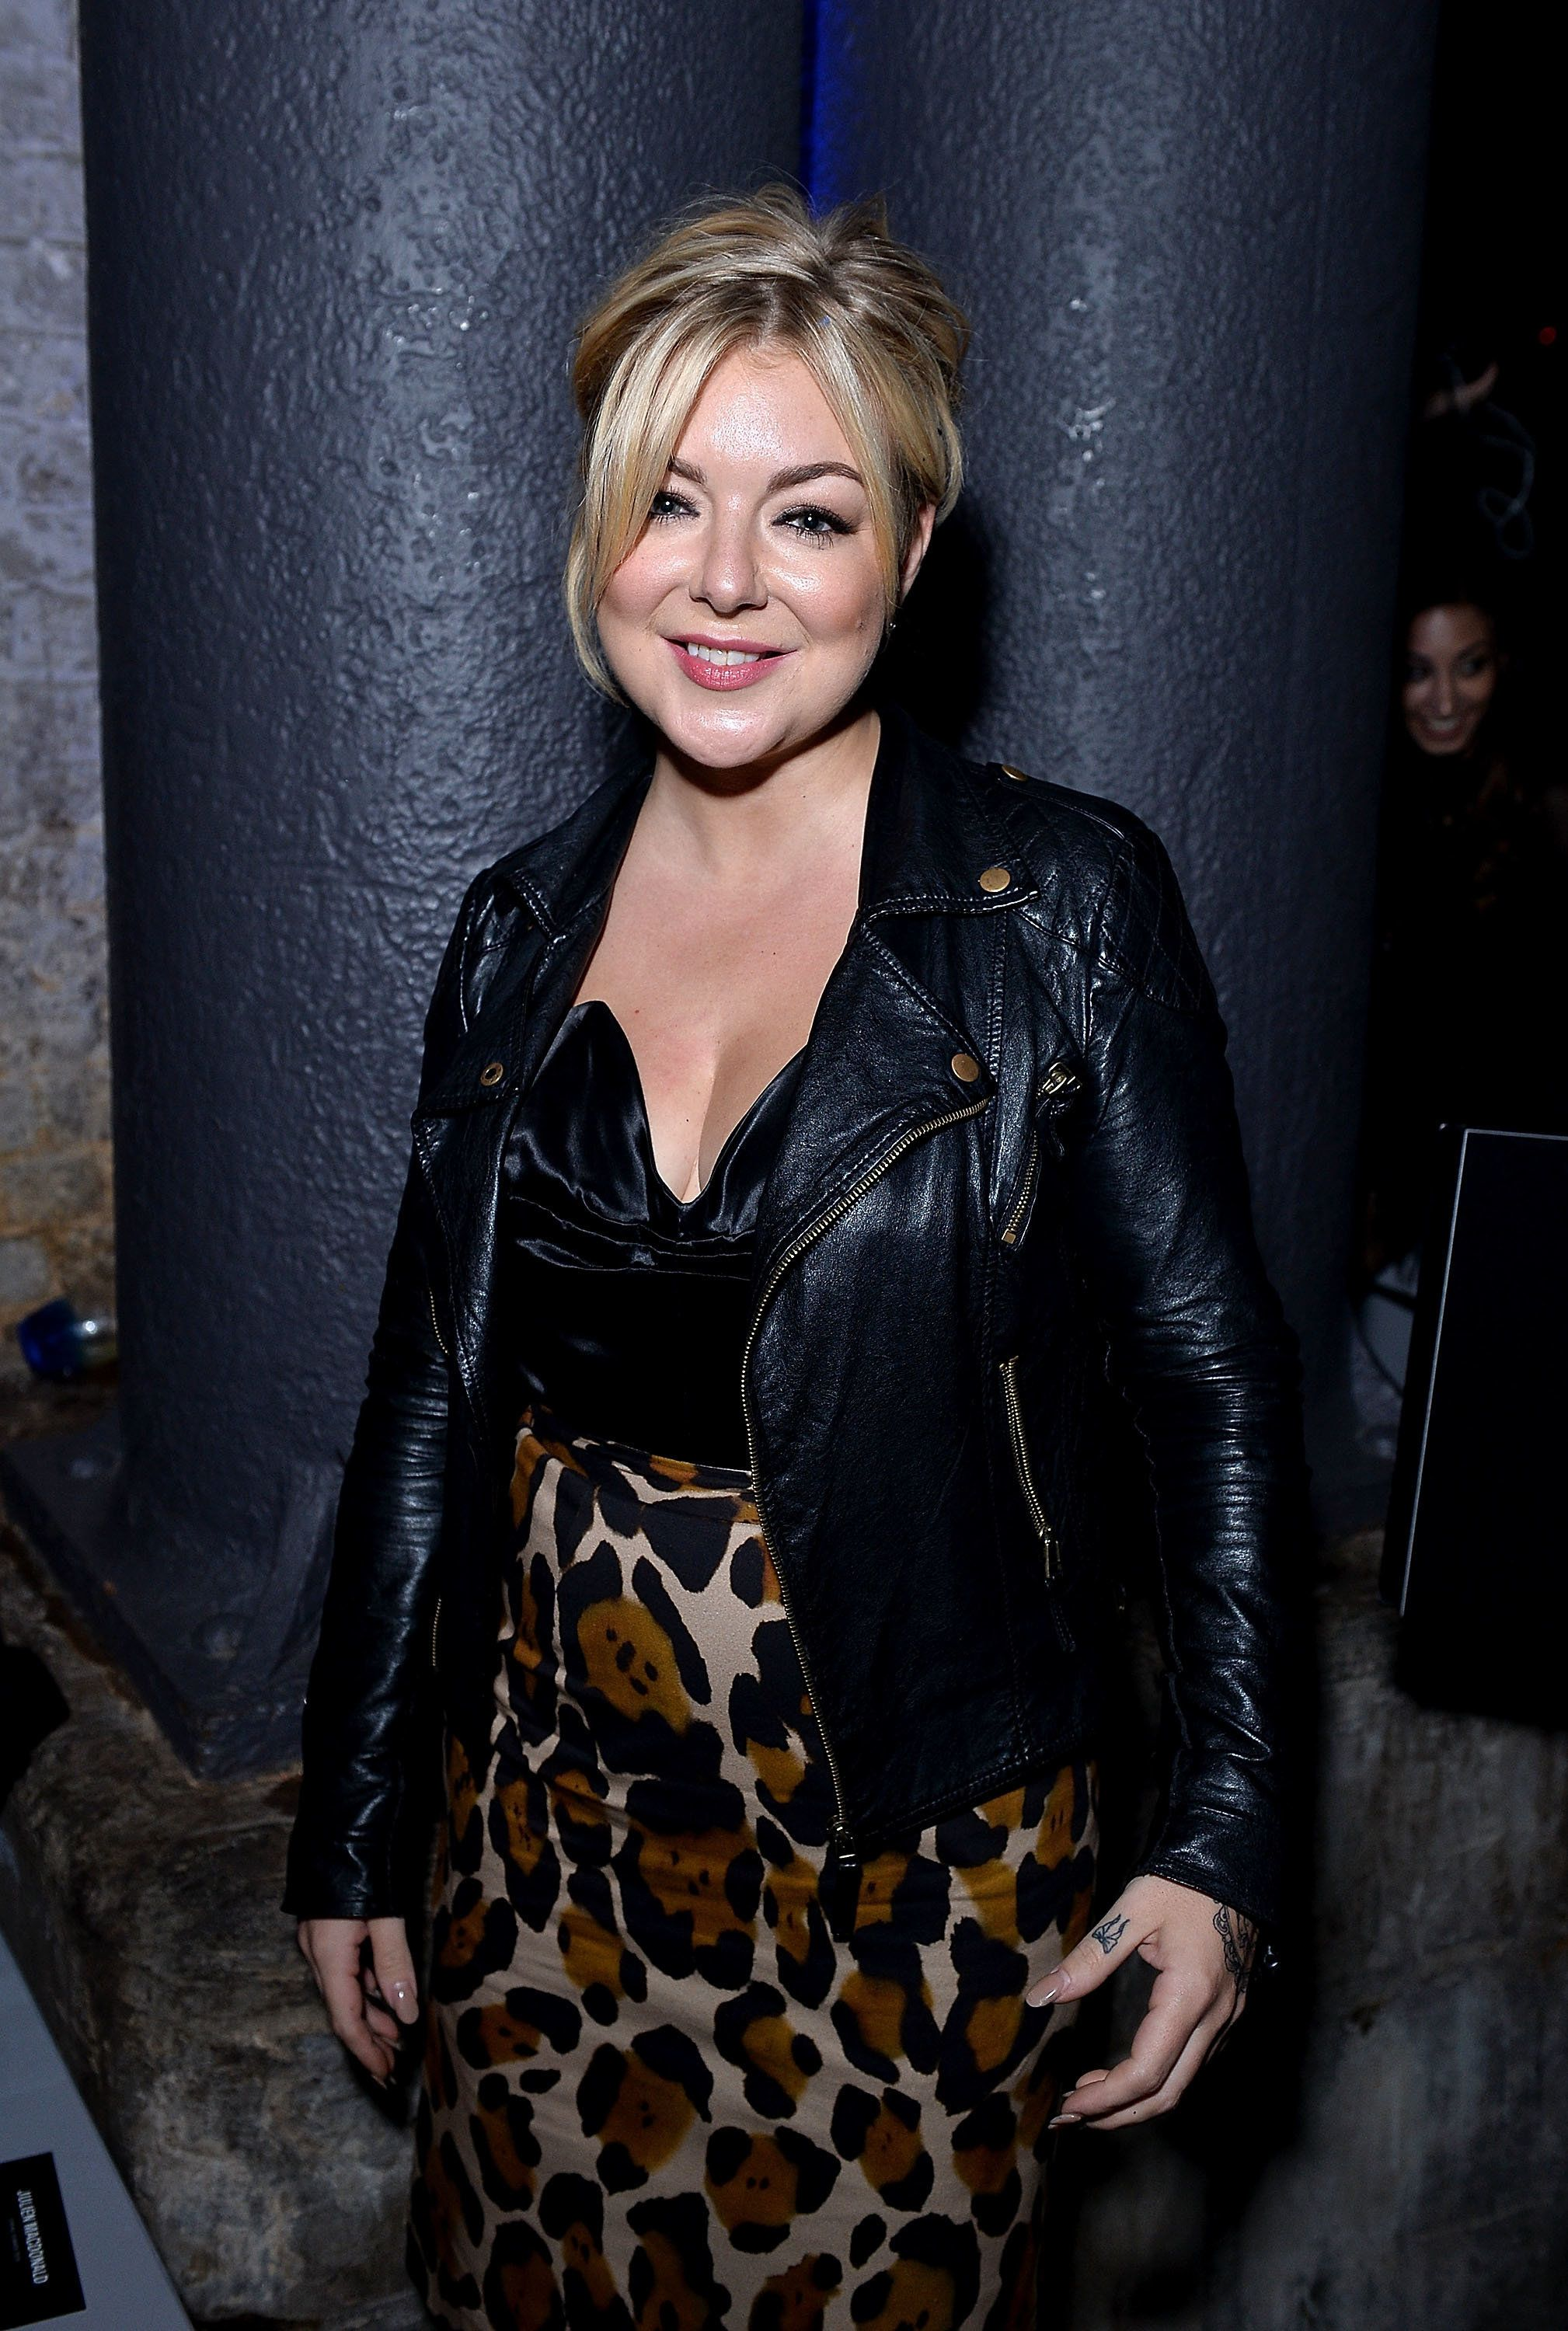 Sheridan Smith Opens Up About Her Mental Health: 'My Life Was Falling